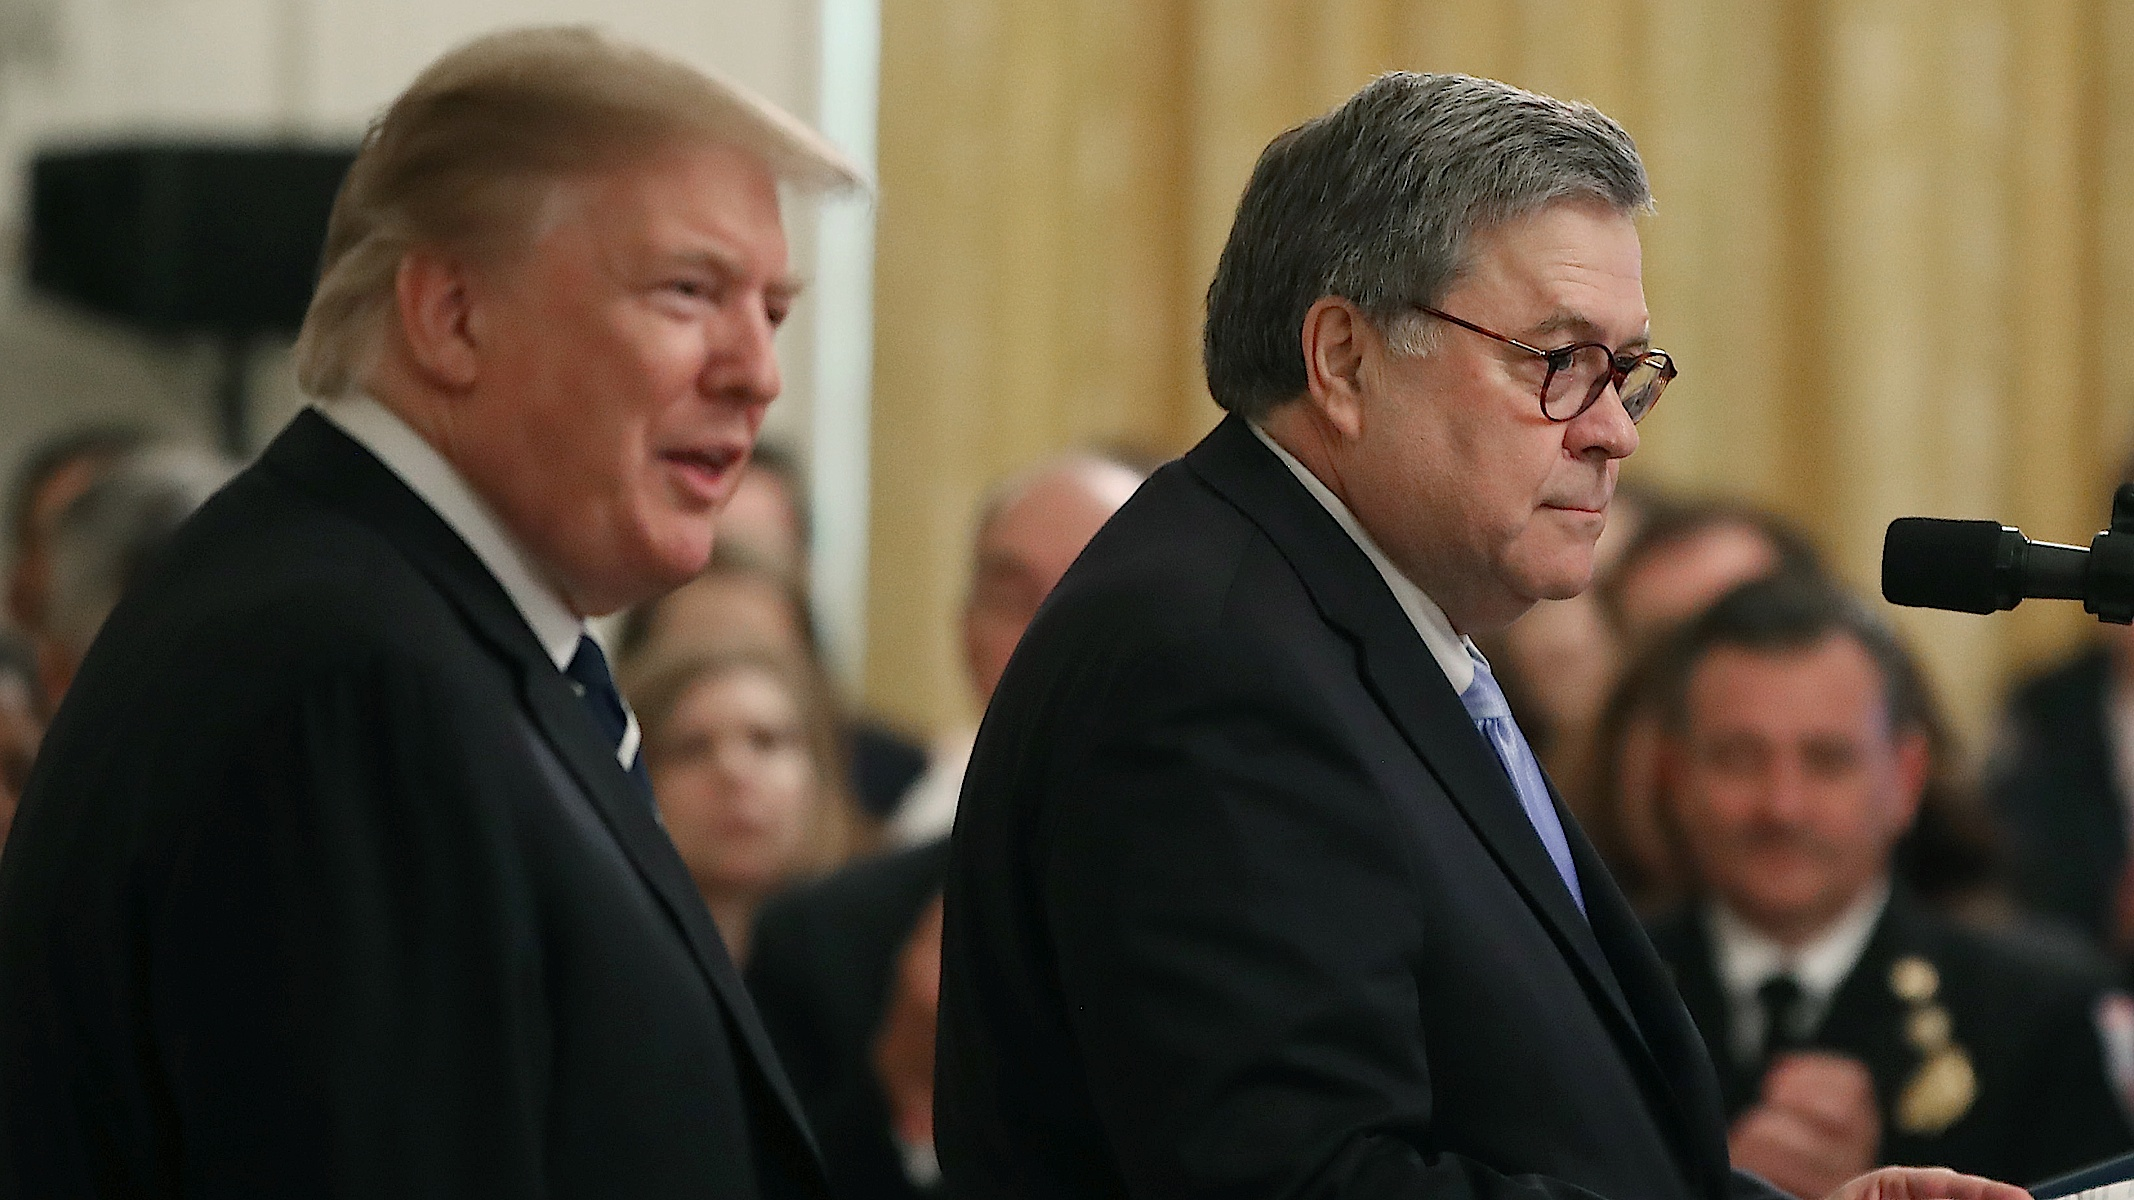 After Fox News Hurts Trump's Feelings, Barr Talks to Murdoch